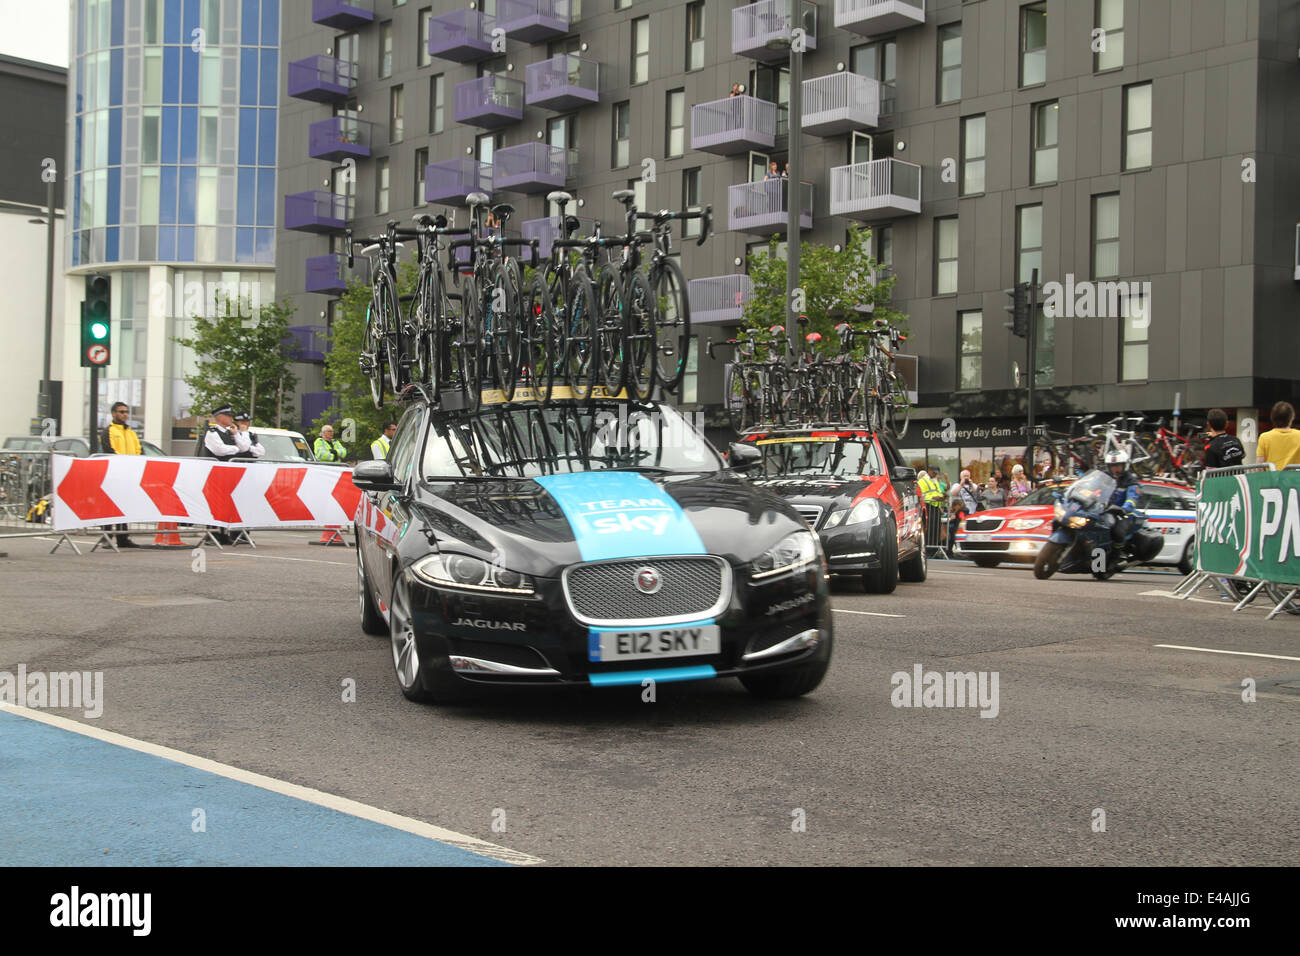 London, UK. 07th July, 2014. London, UK. 07th July, 2014. Sky Team broom wagon​ races after the rides on Stratford - Stock Image